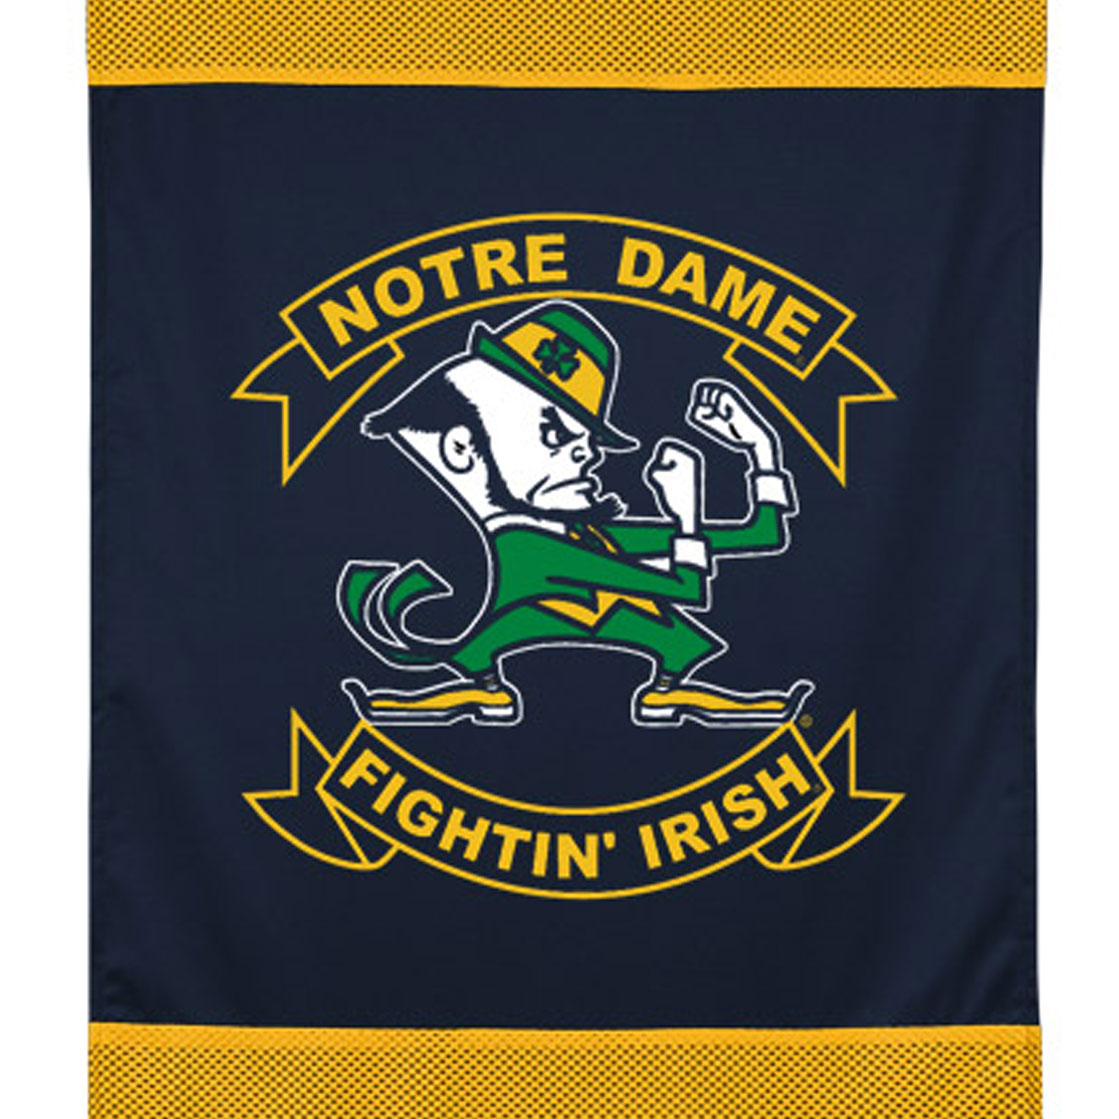 Notre Dame Football Wallpaper: Notre Dame-Fighting Irish